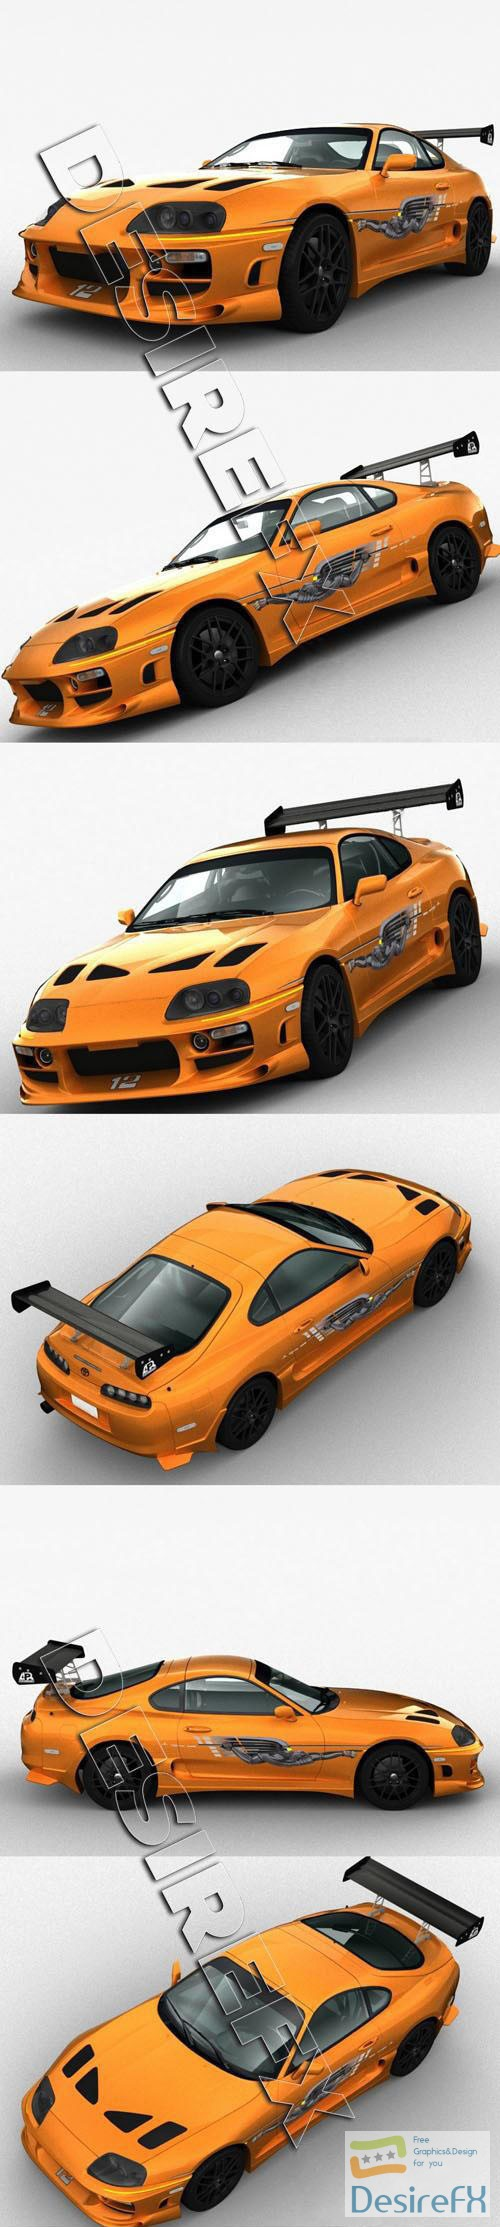 3d-models - Toyota Supra 1994 3D Model